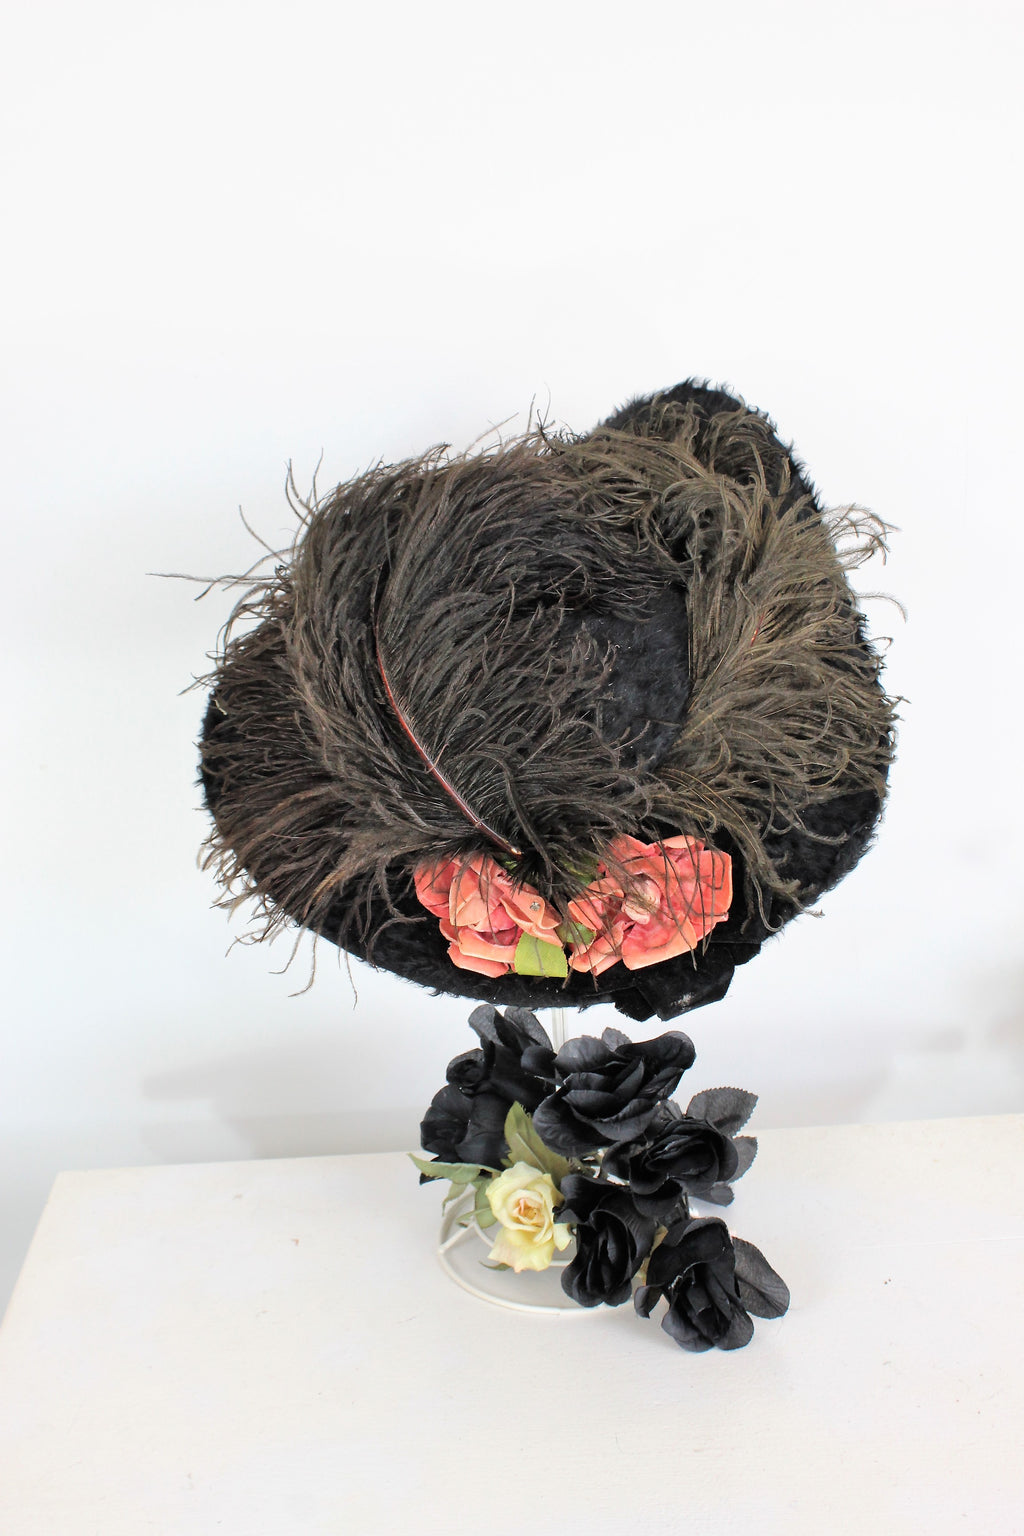 Vintage Antique 1890s - 1910s Black Fur Wide Brimmed Hat